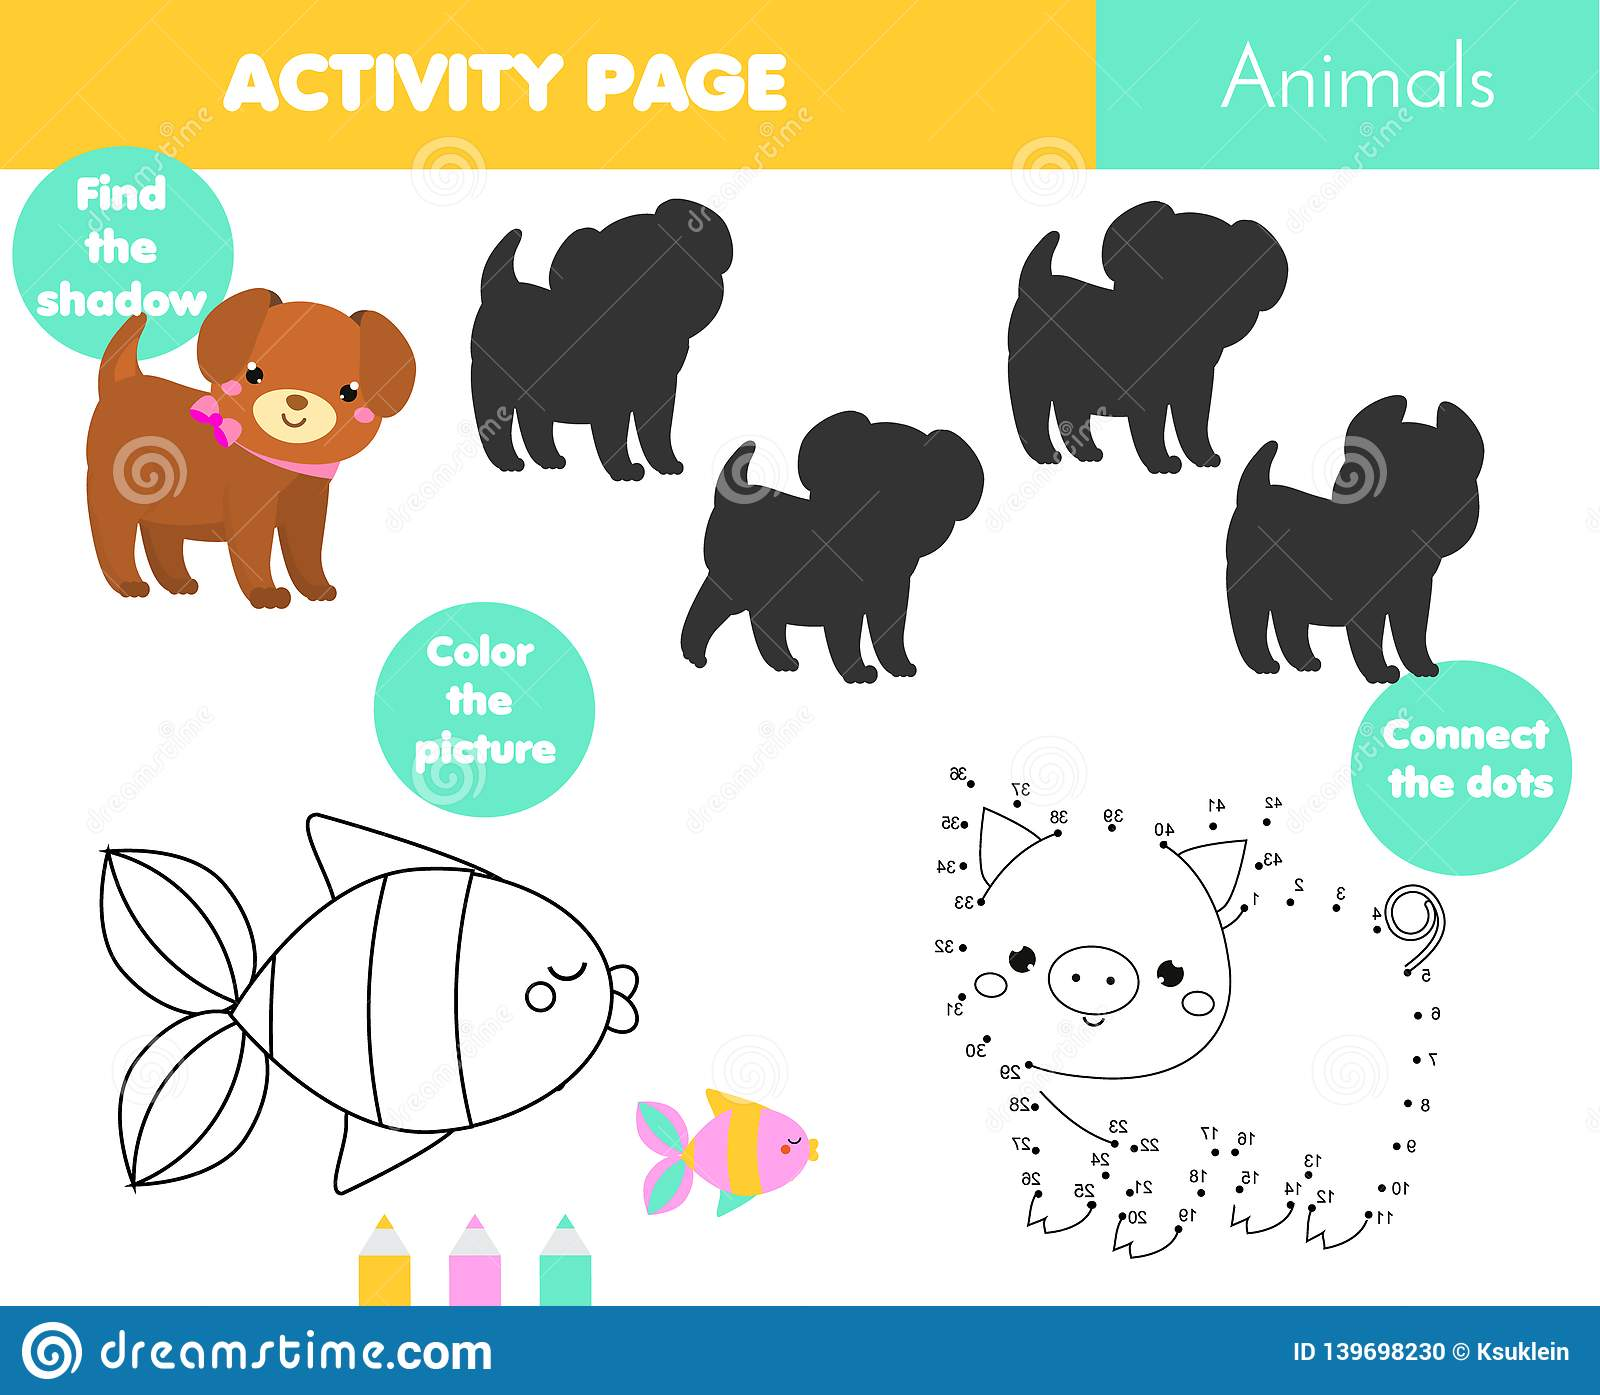 Fun Activity Page For Kids Educational Children Game